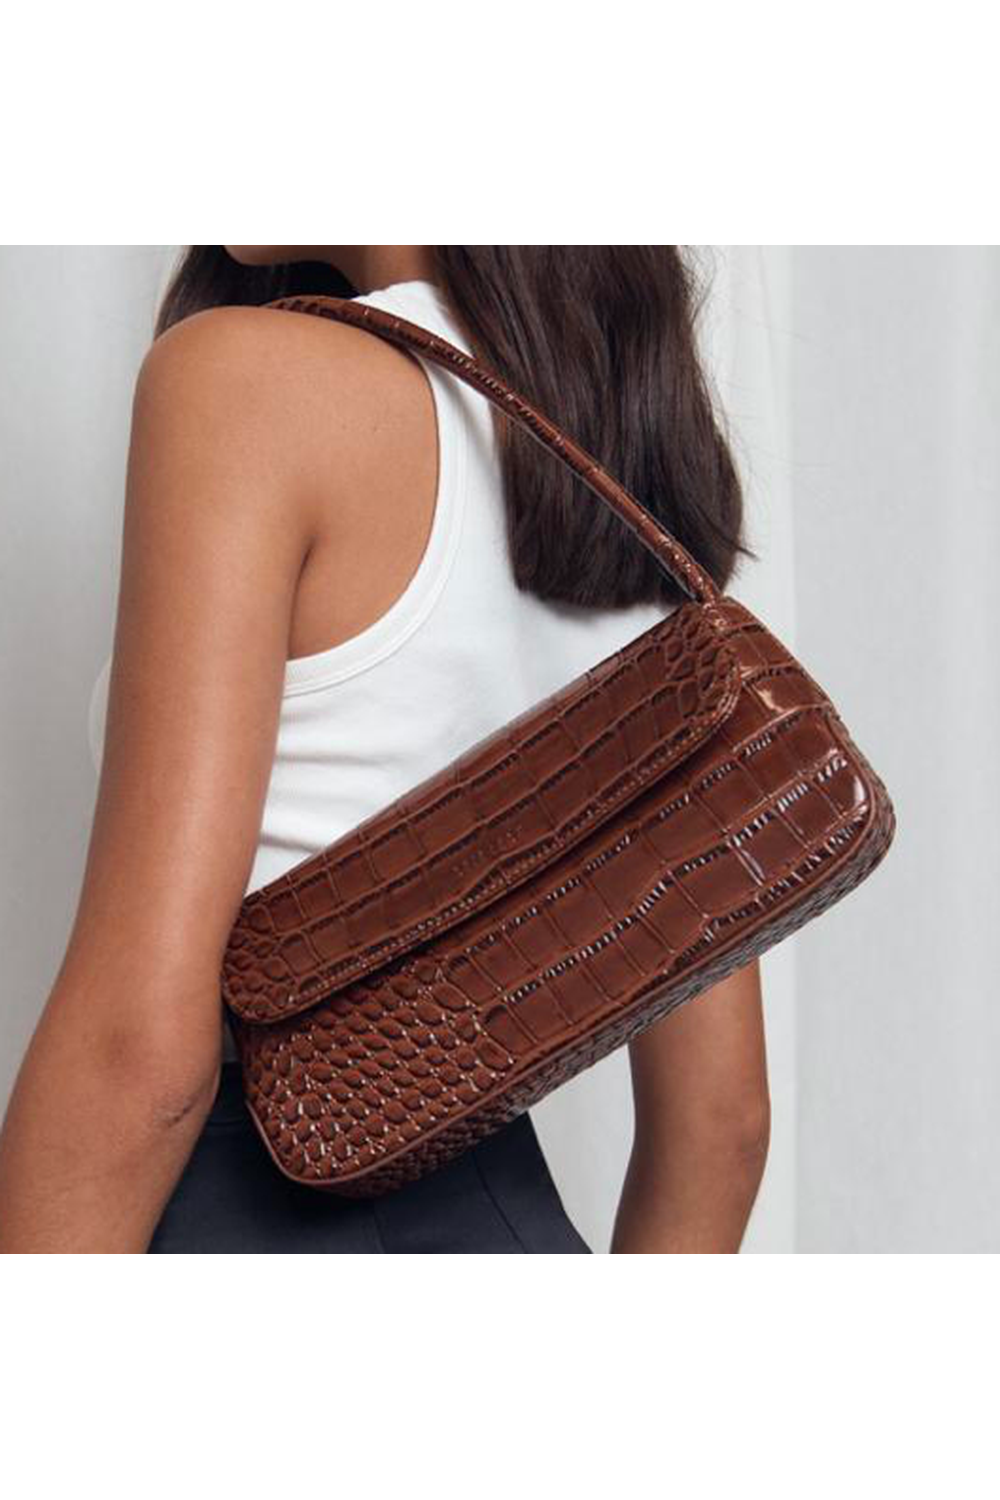 The Camille Bag / Chocolate Matte Croc | Brie Leon | Mad About The Boy